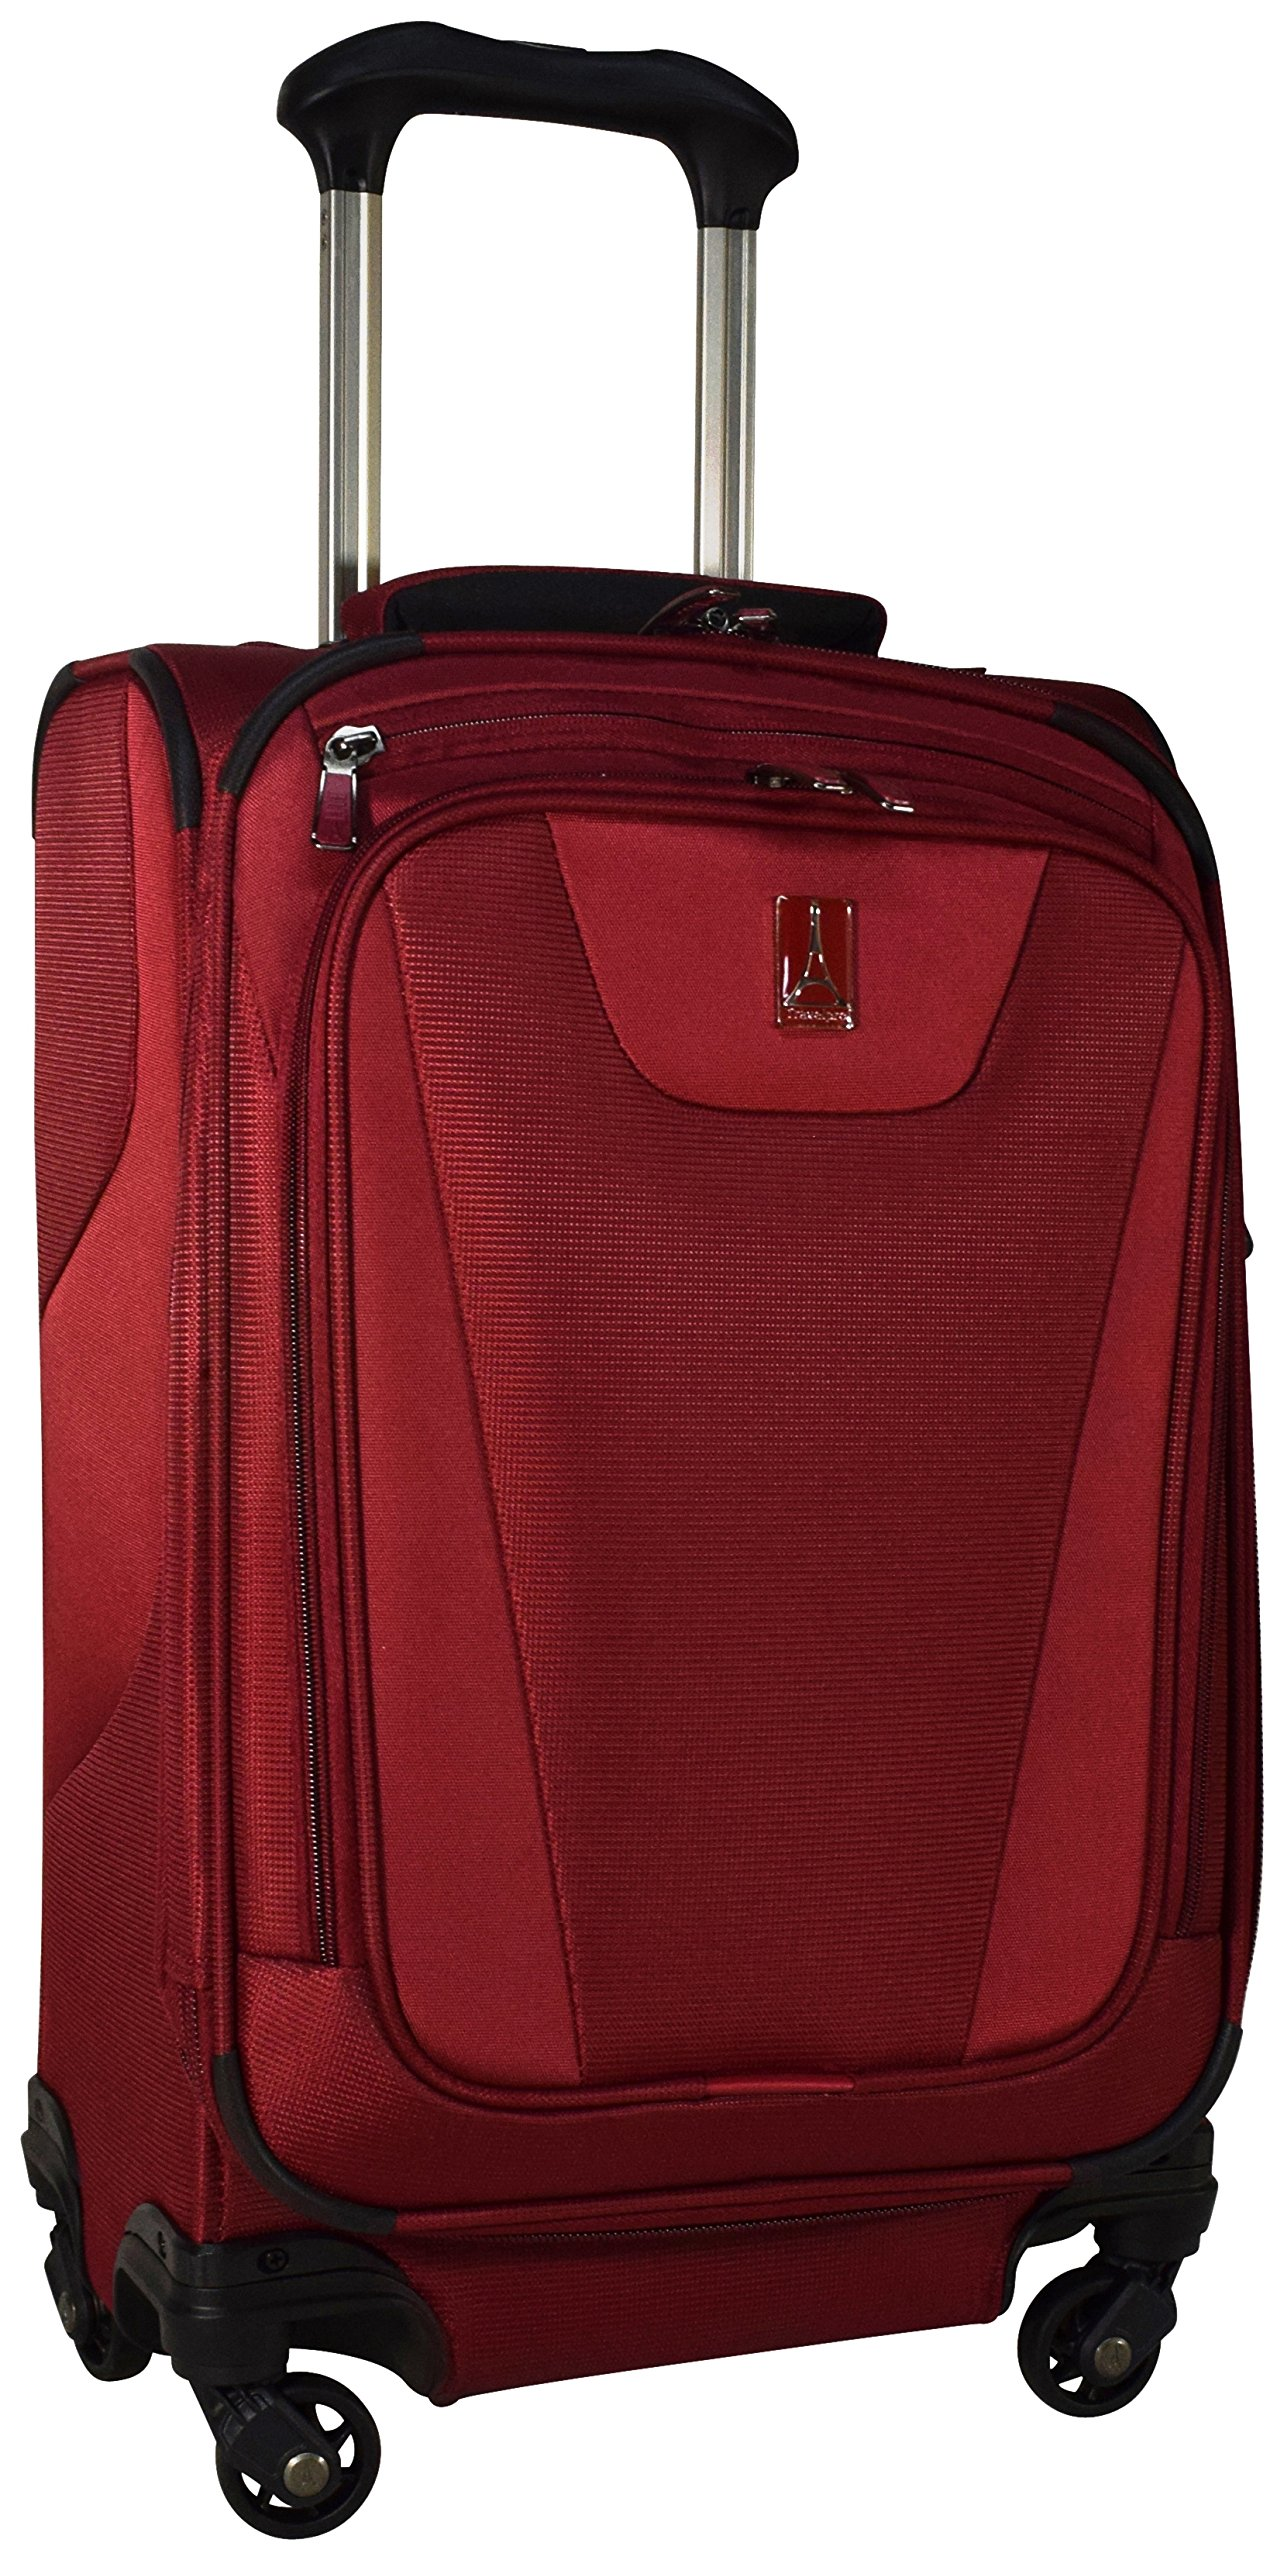 Travelpro Maxlite 4 International Expandable Carry-on Spinner (Merlot)